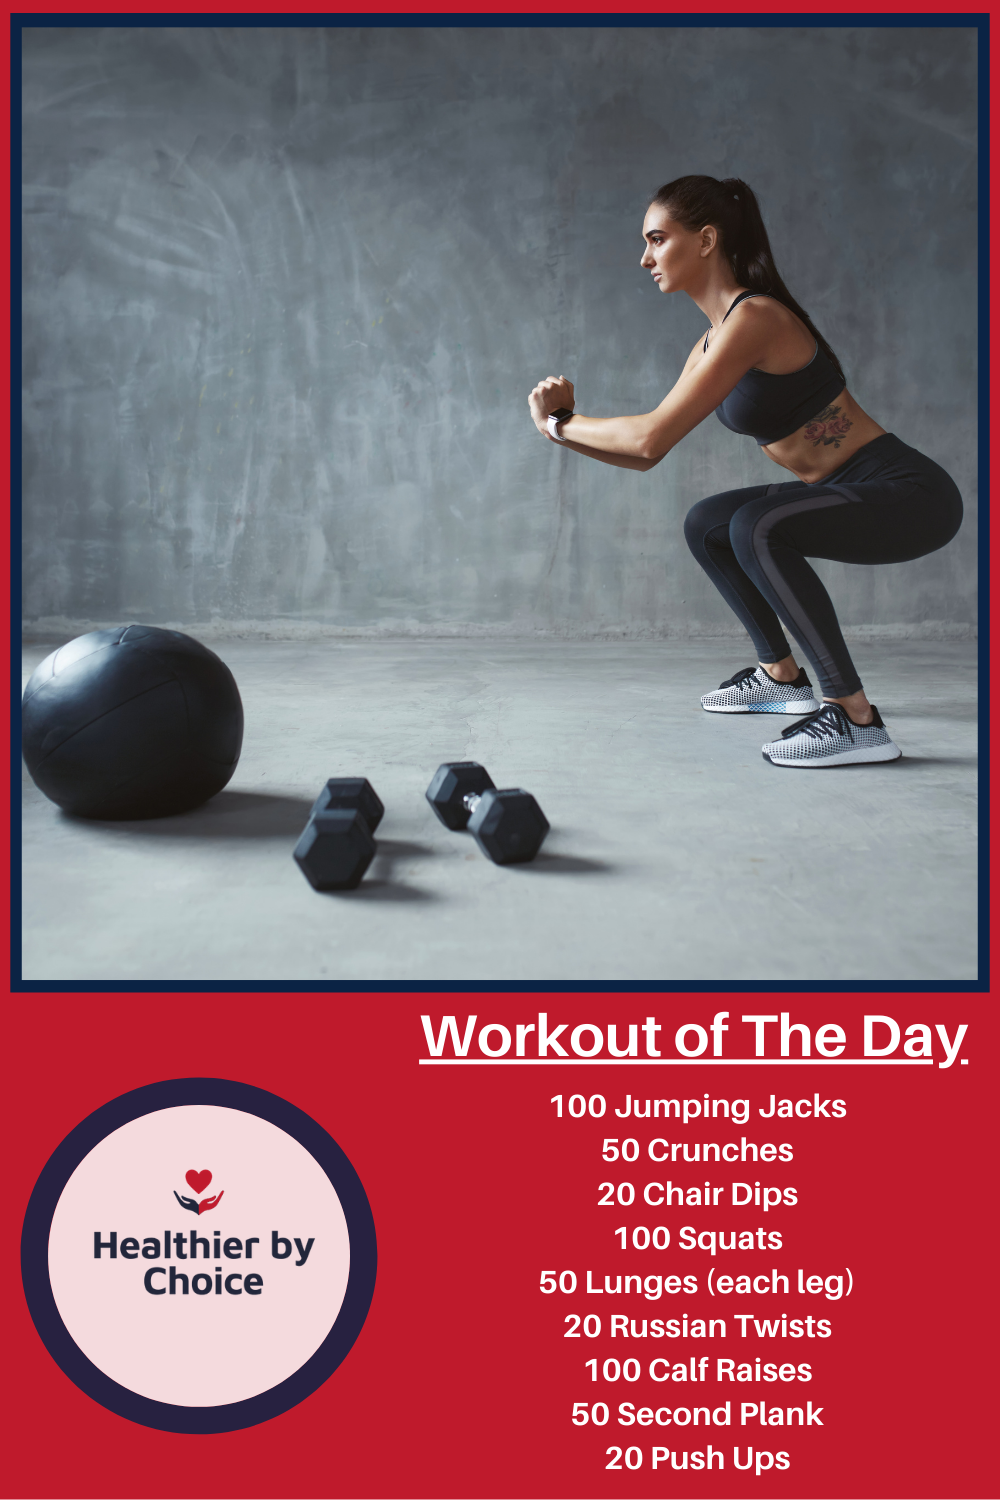 Workout Of The Day In 2020 Russian Twist Calf Raises Workout